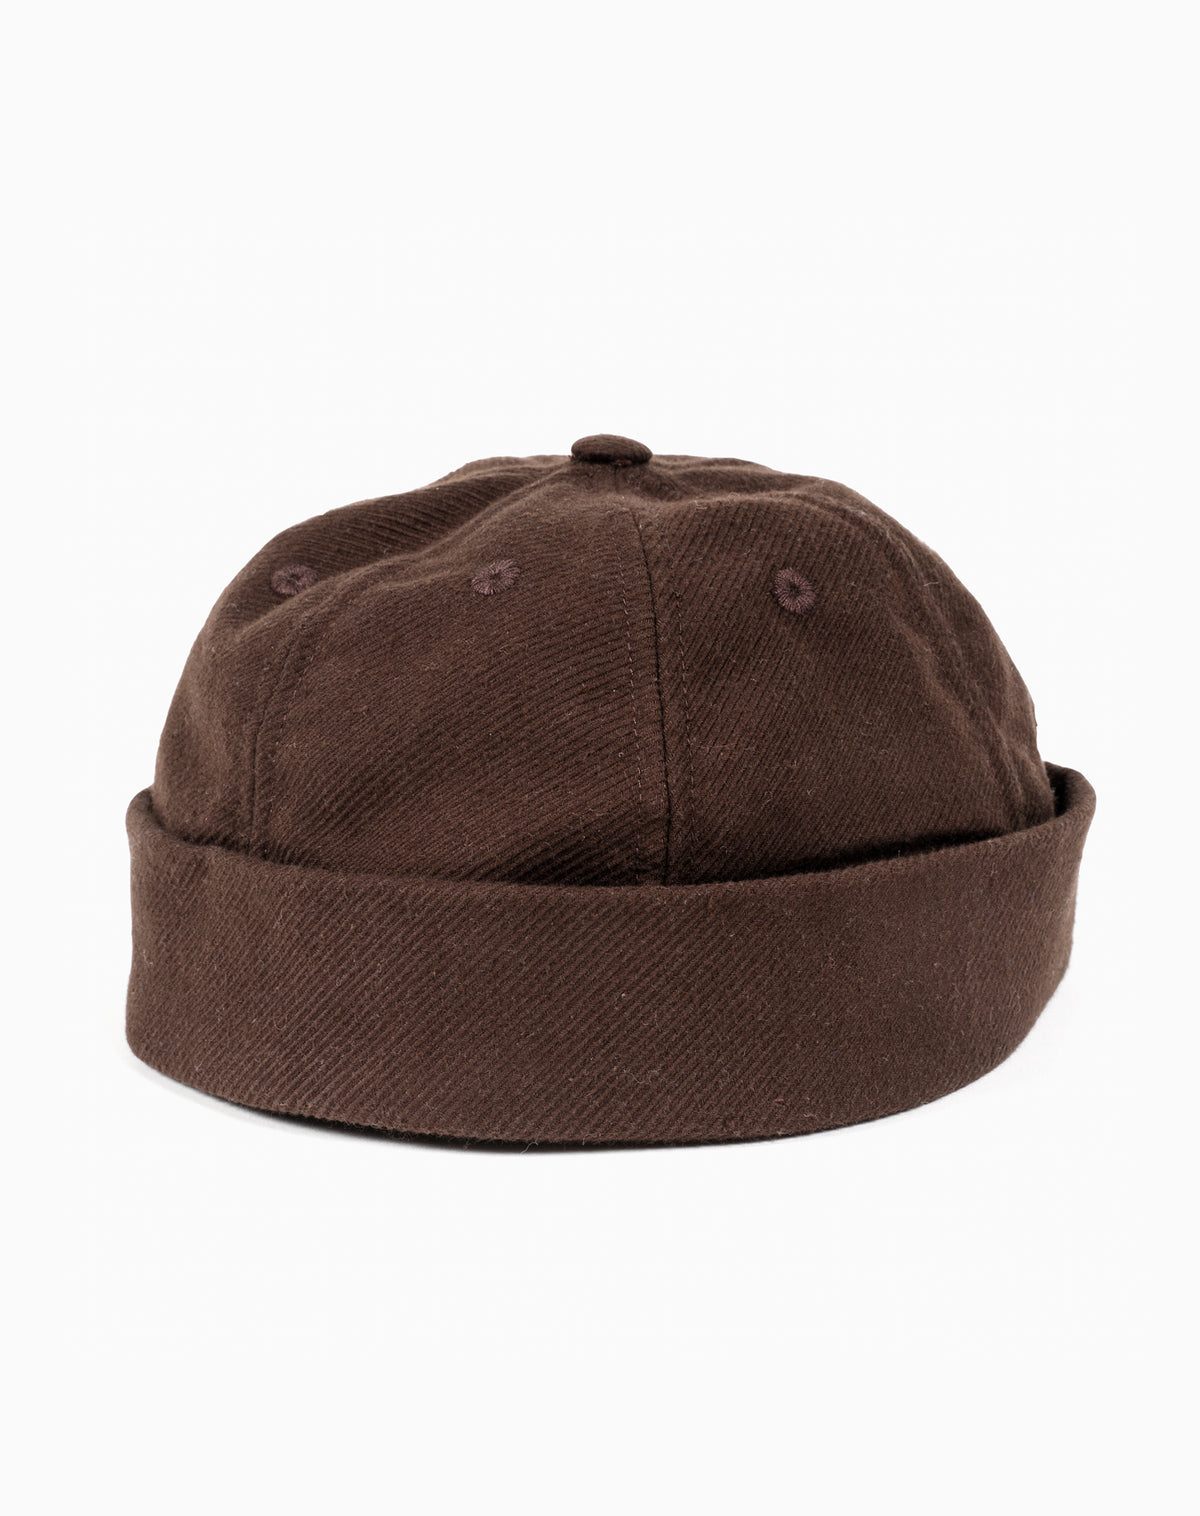 Harbour Cap in Brown